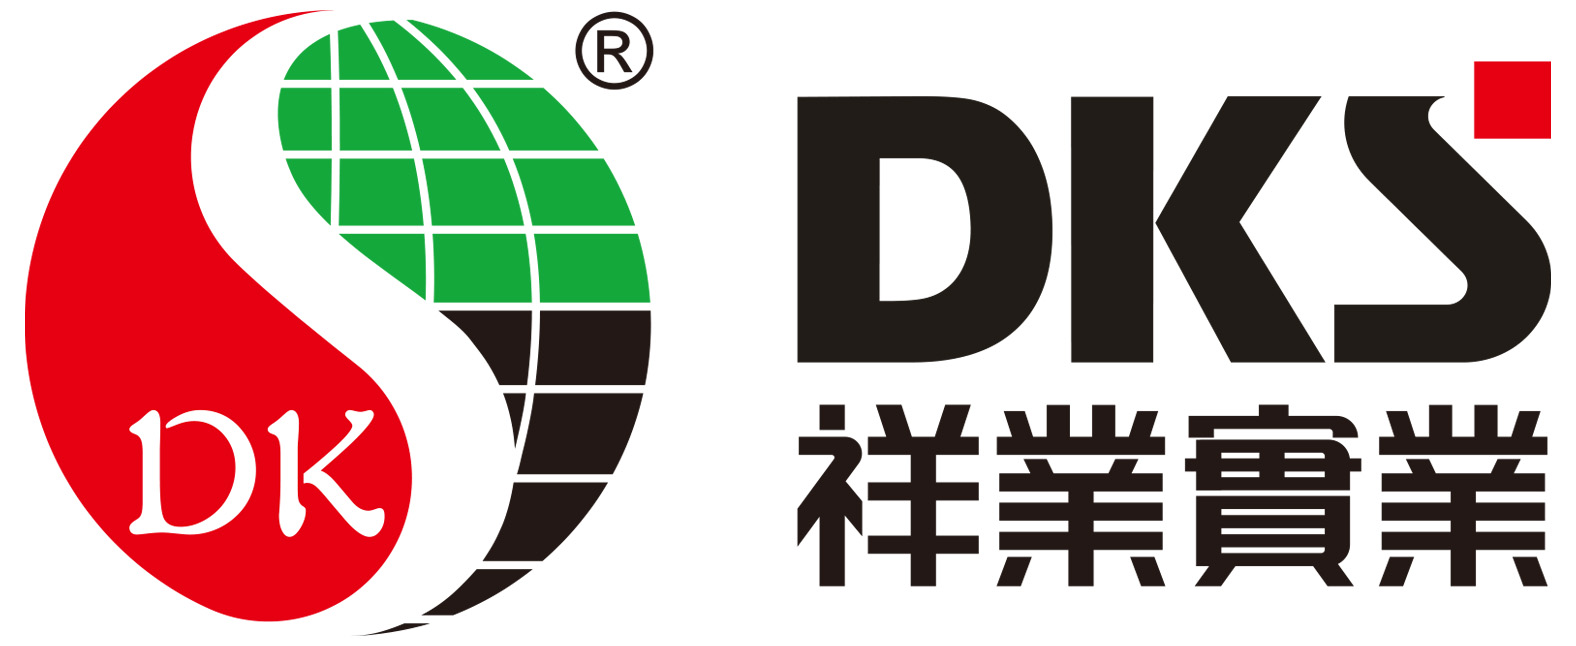 DKS ENTERPRISES CO.,LTD.